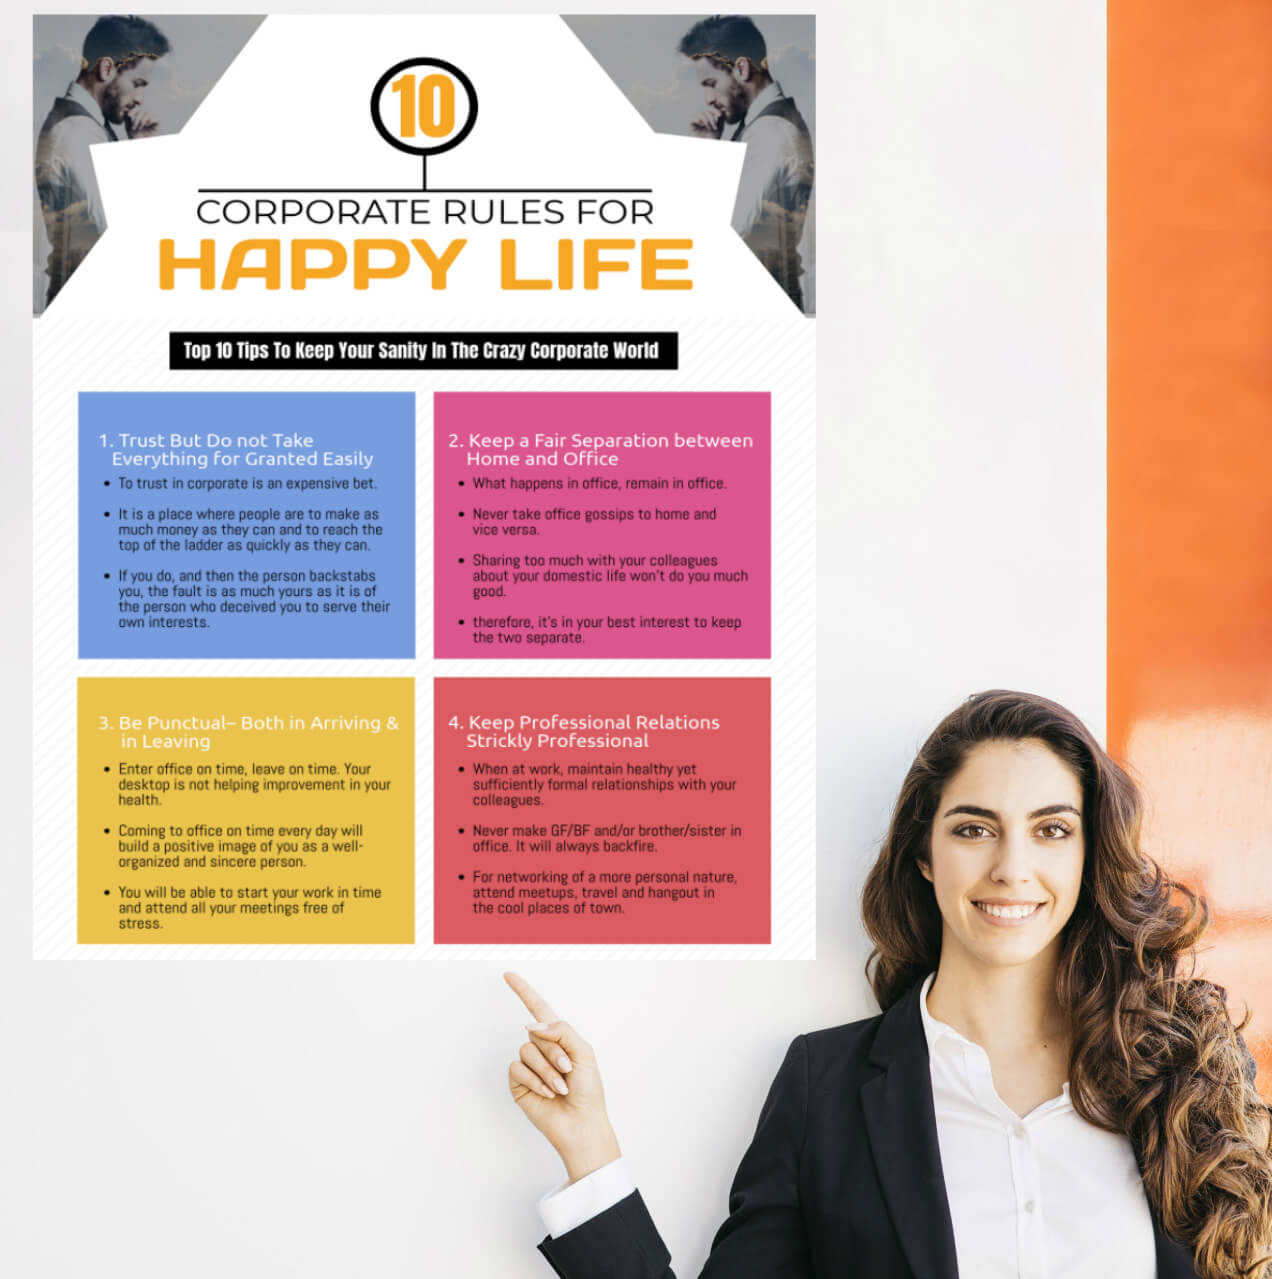 10 Golden Corporate Rules for Happy Life